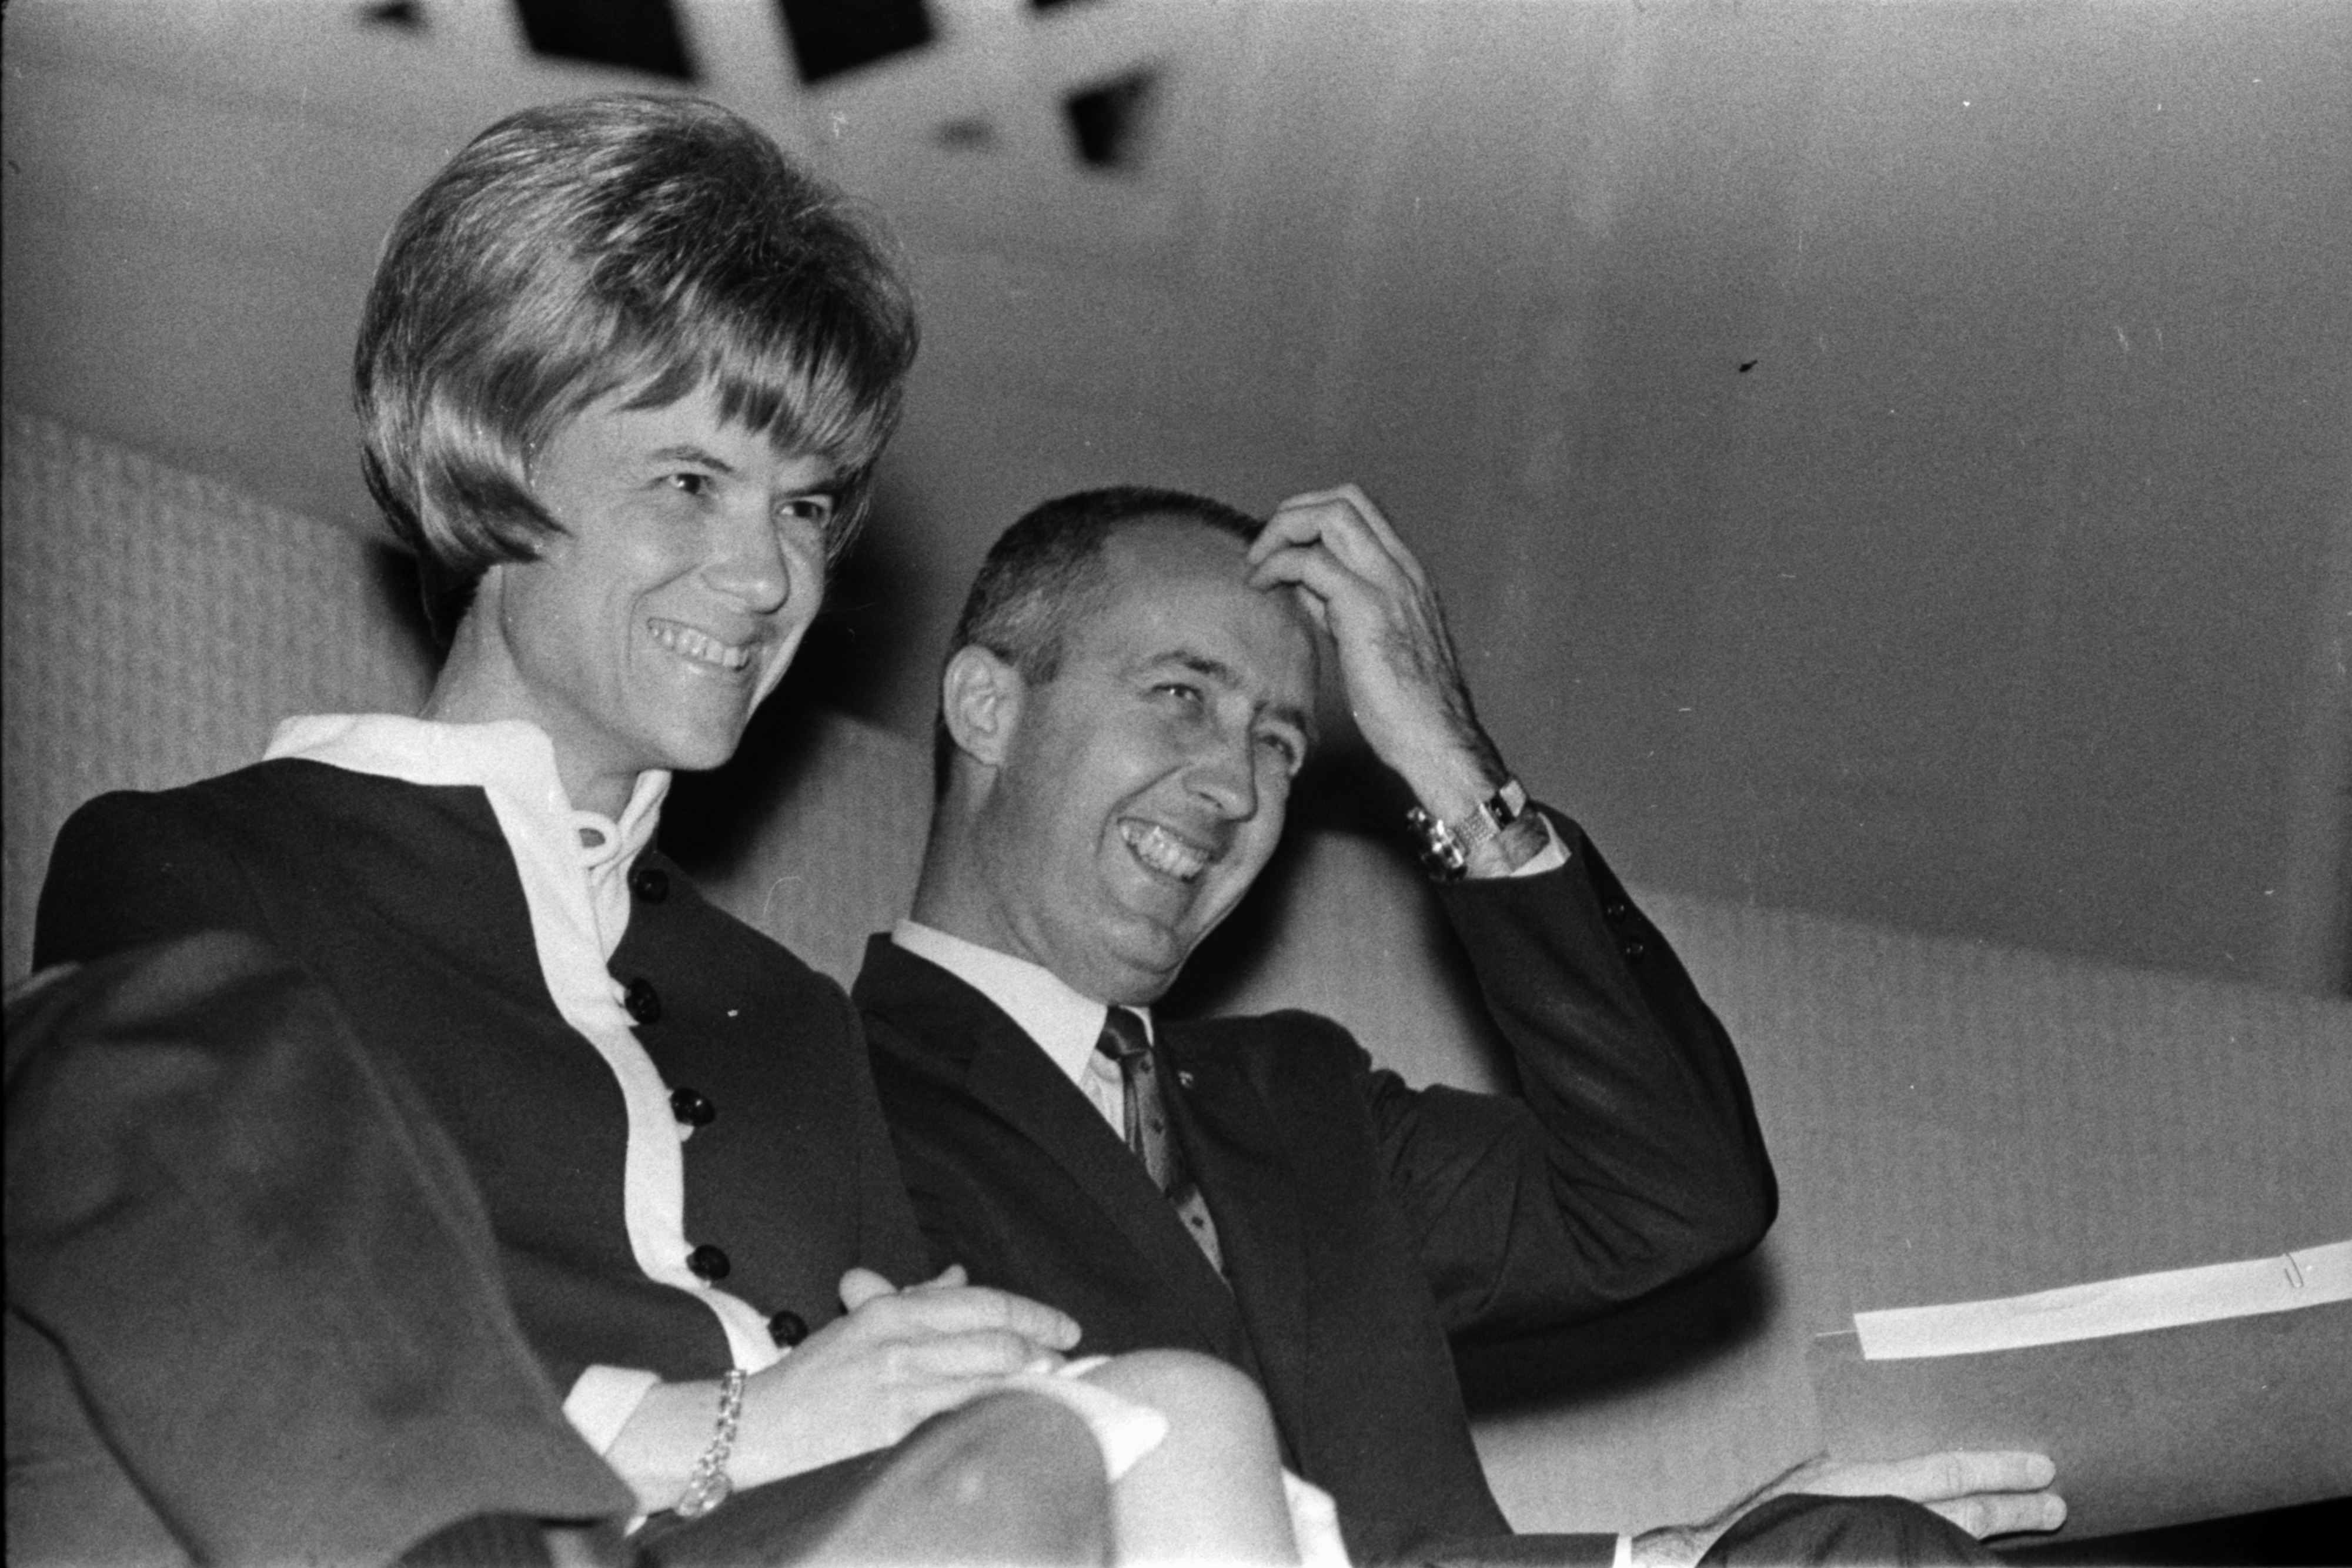 Astronaut Col. James A. McDivitt and wife Patricia at Hill Auditorium, April 1969 image